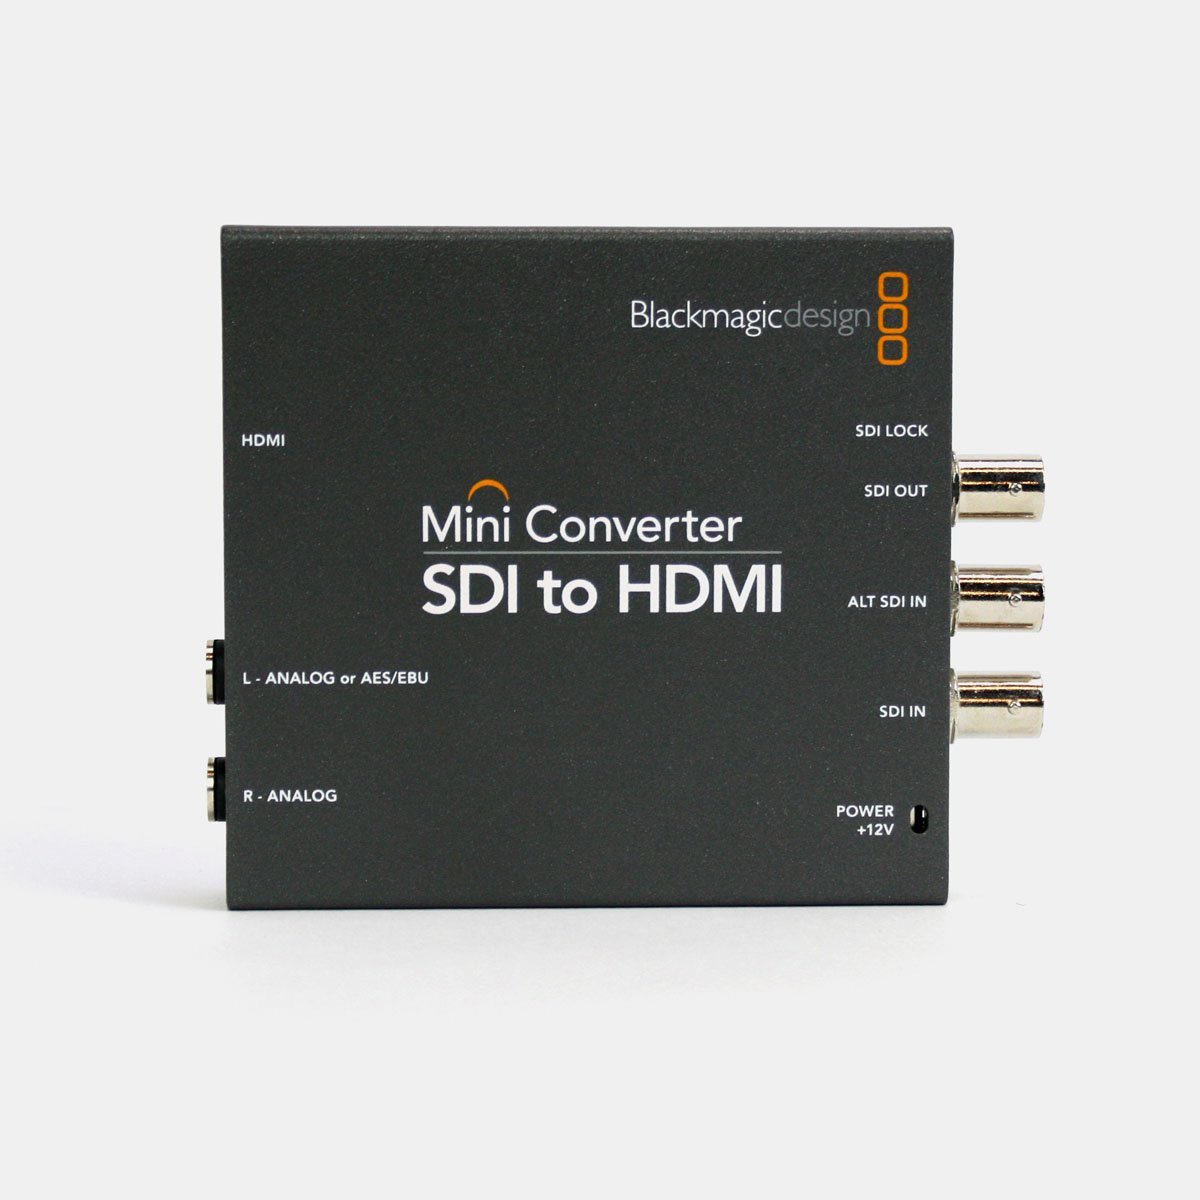 Used Blackmagic Design BMD-CONVMBSH Mini Converter SDI to HDMI